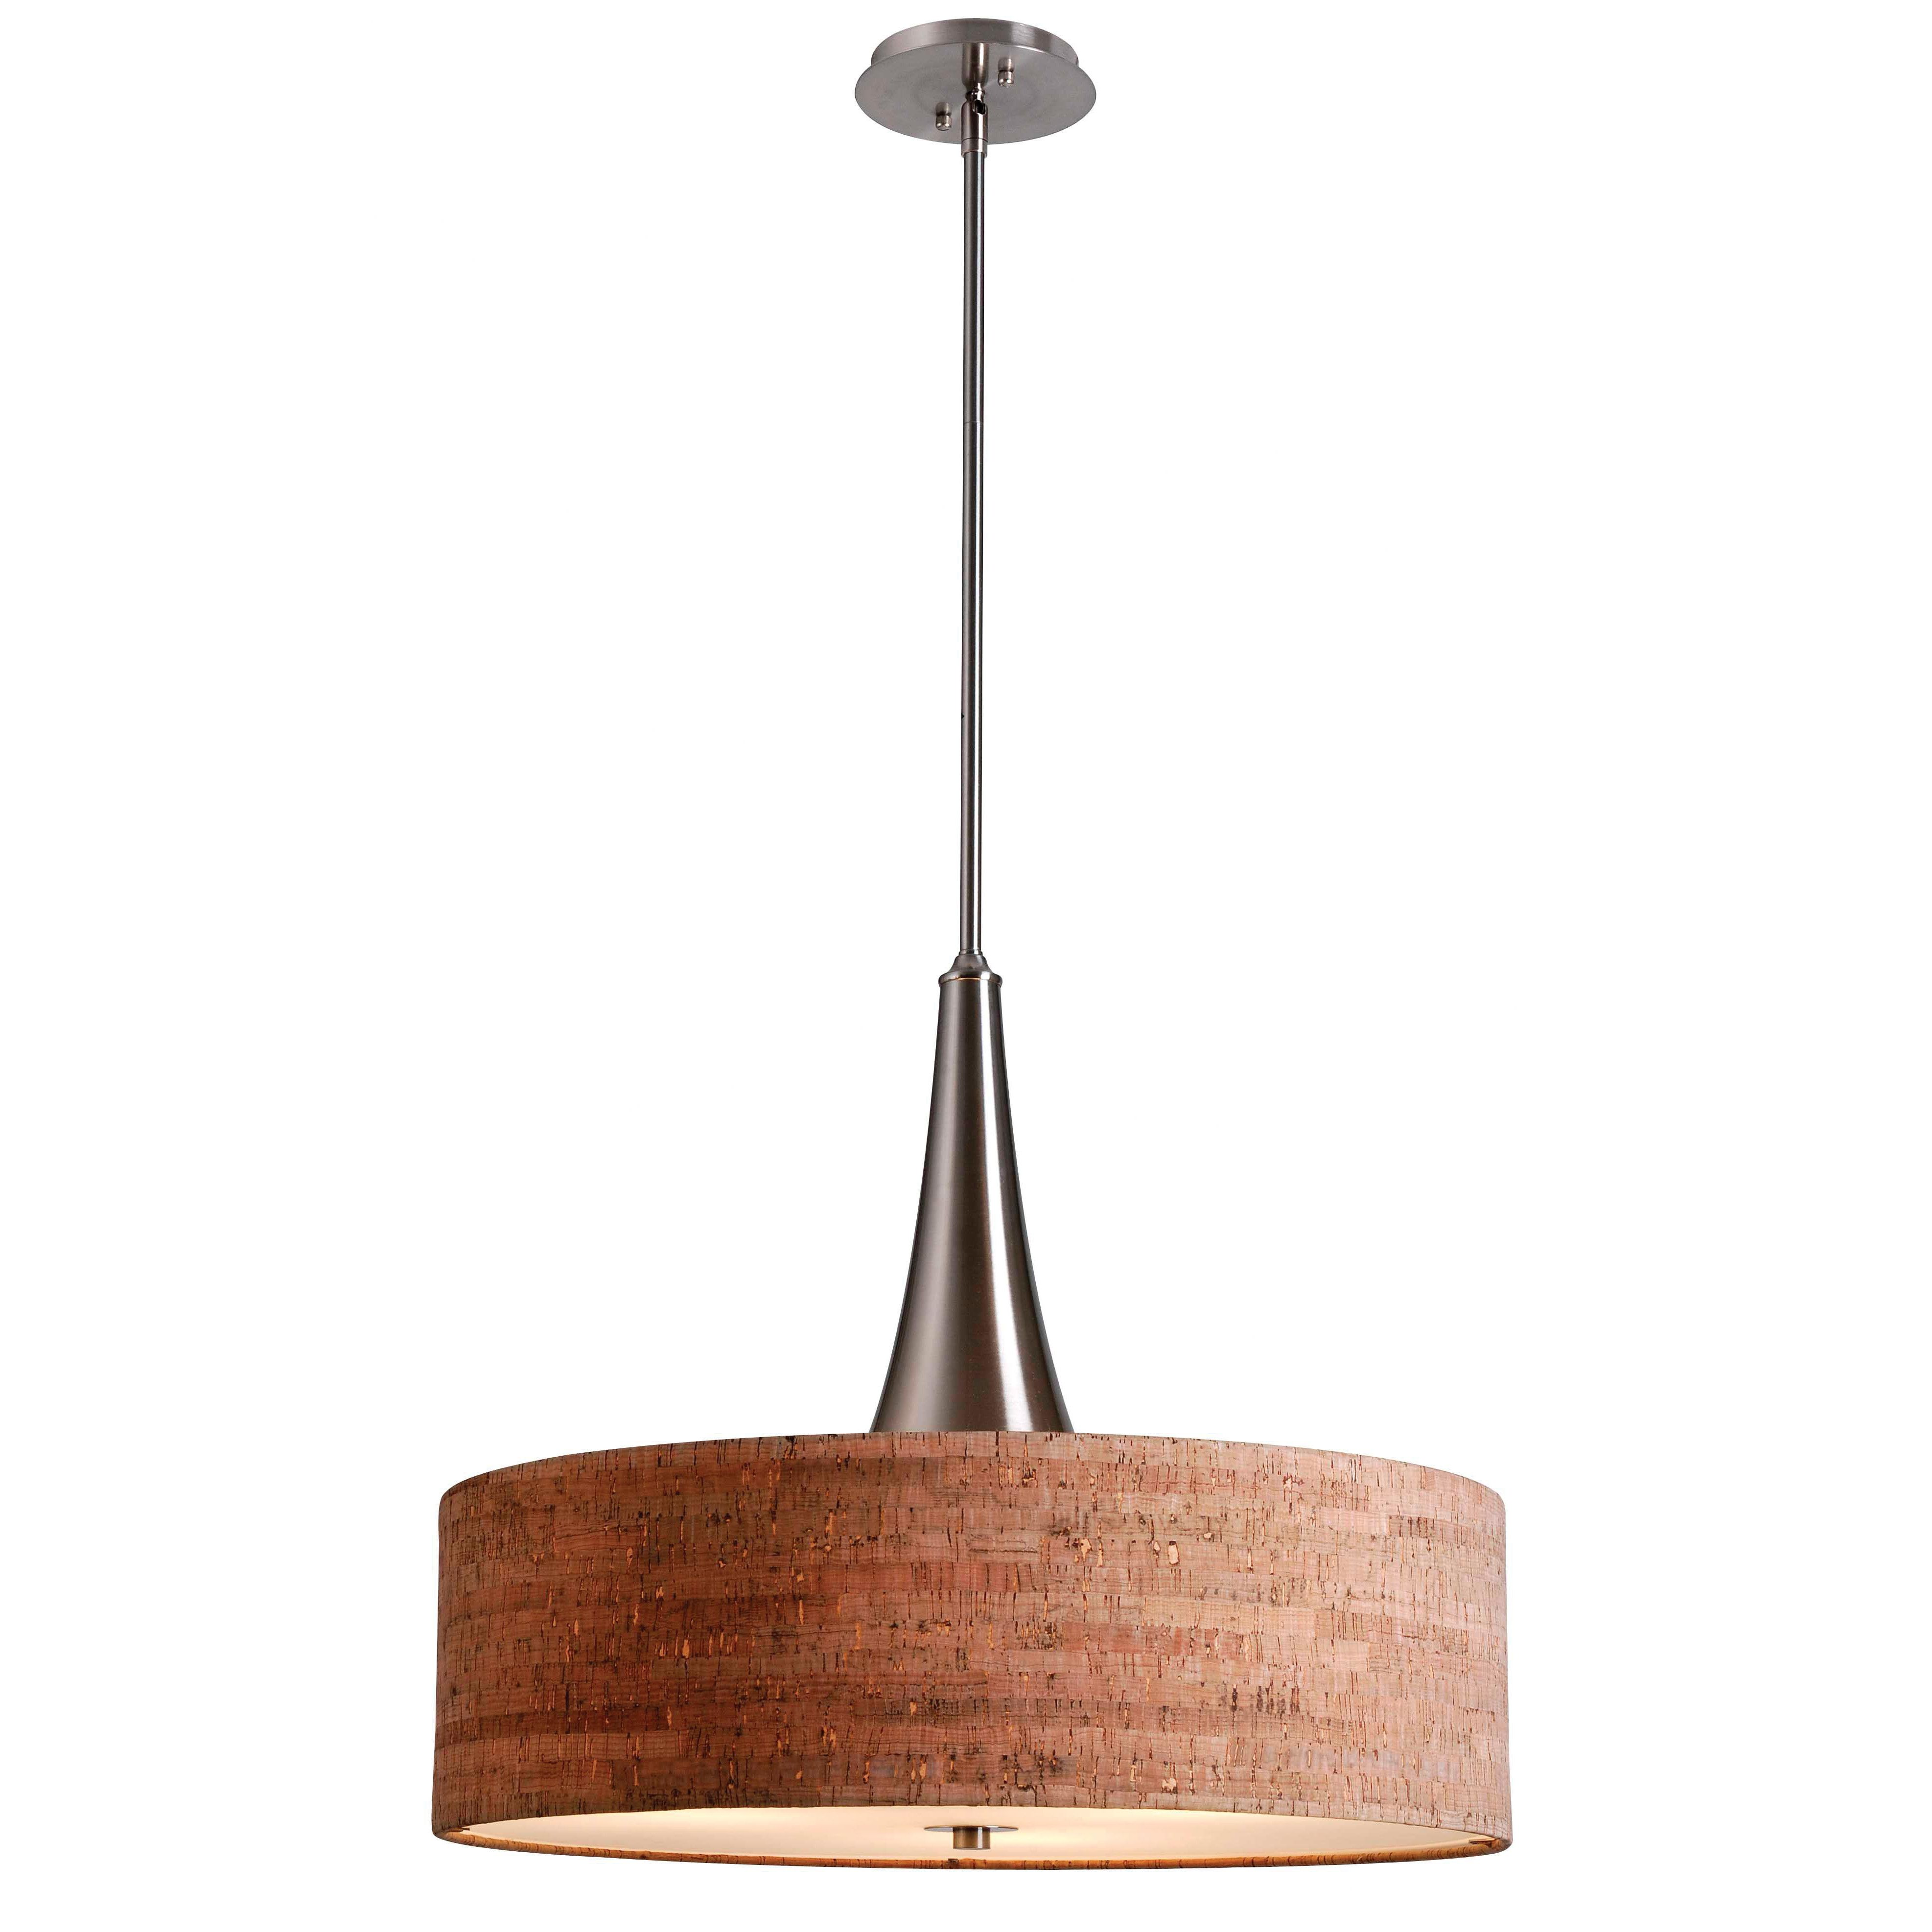 desert 8 helius lighting group. Mercury Row® Electra 3-Light Drum Pendant. $114 And 22 Inches In Diameter Desert 8 Helius Lighting Group C